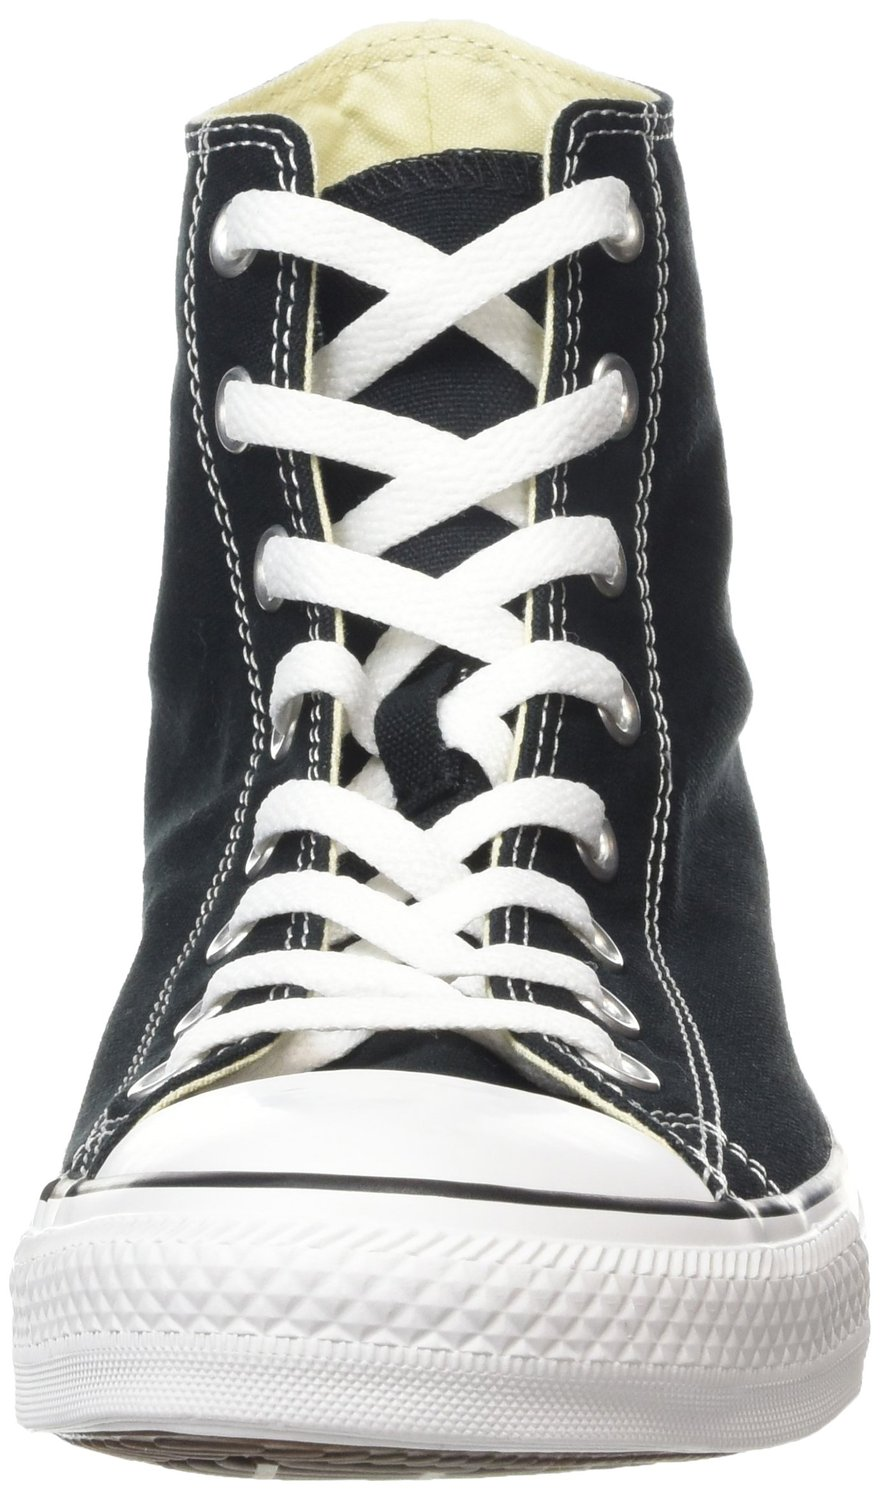 CONVERSE ALL STAR HI M9160 Economical, stylish, and eye-catching shoes